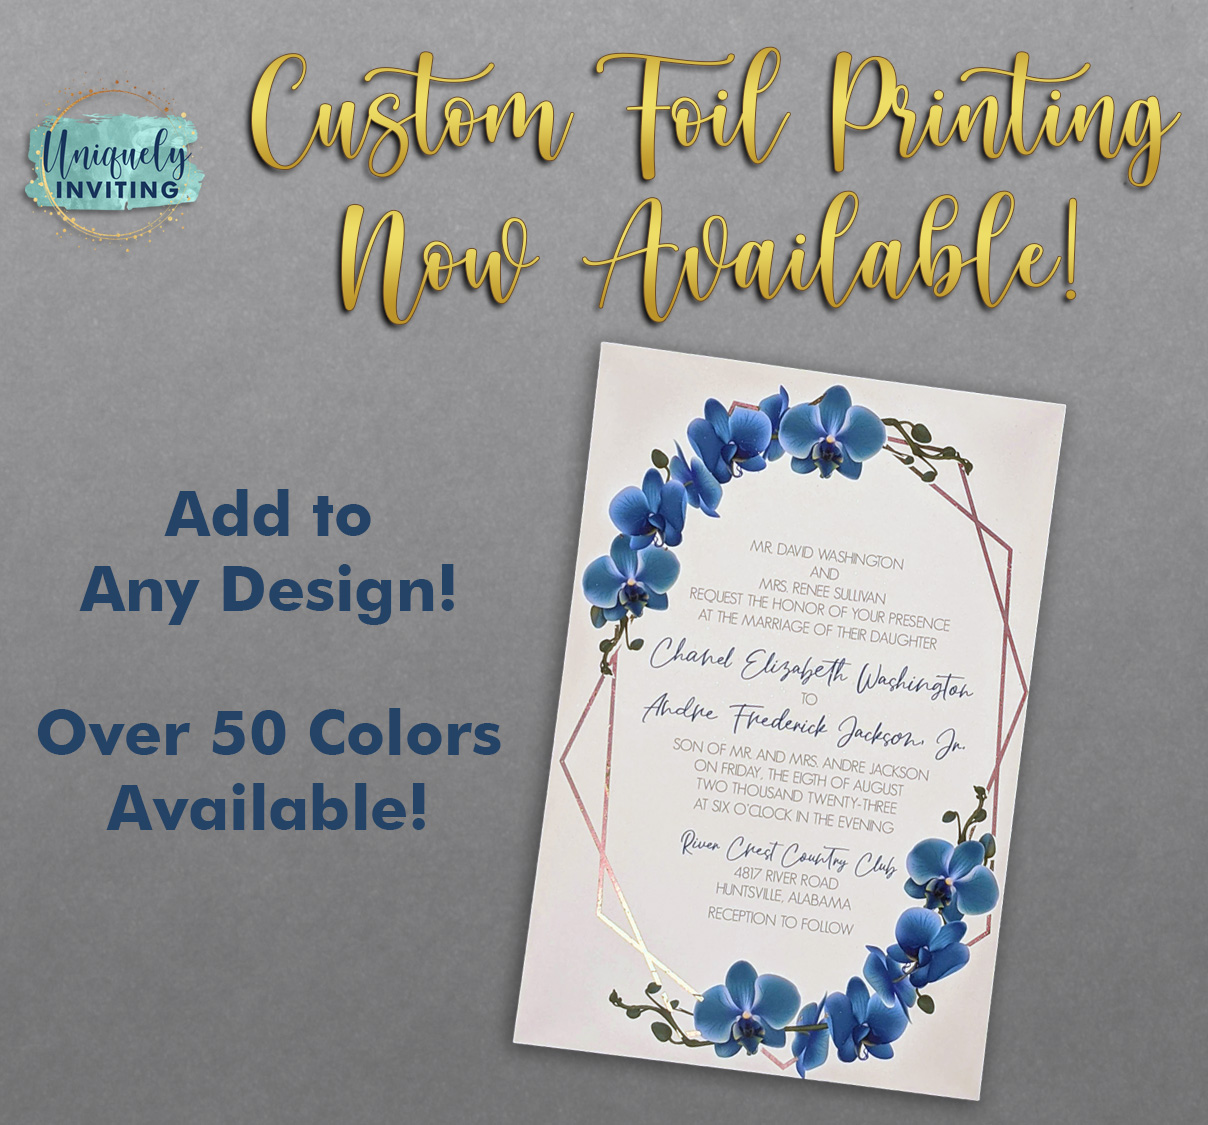 Custom foil printing now available! Add to any design! Over 50 colors to choose from!